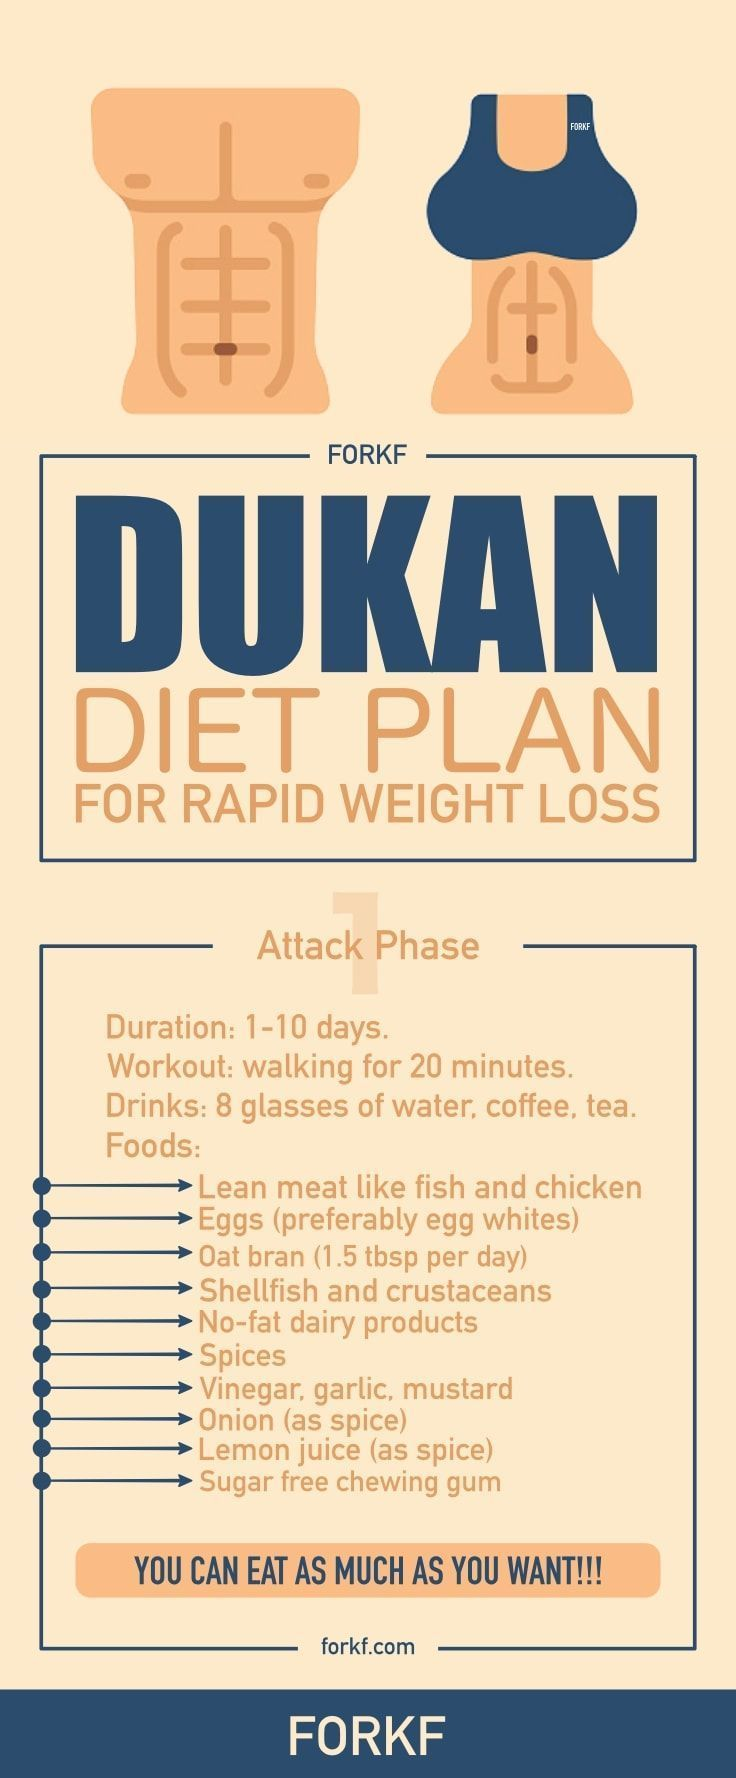 Diet for rapid weight loss